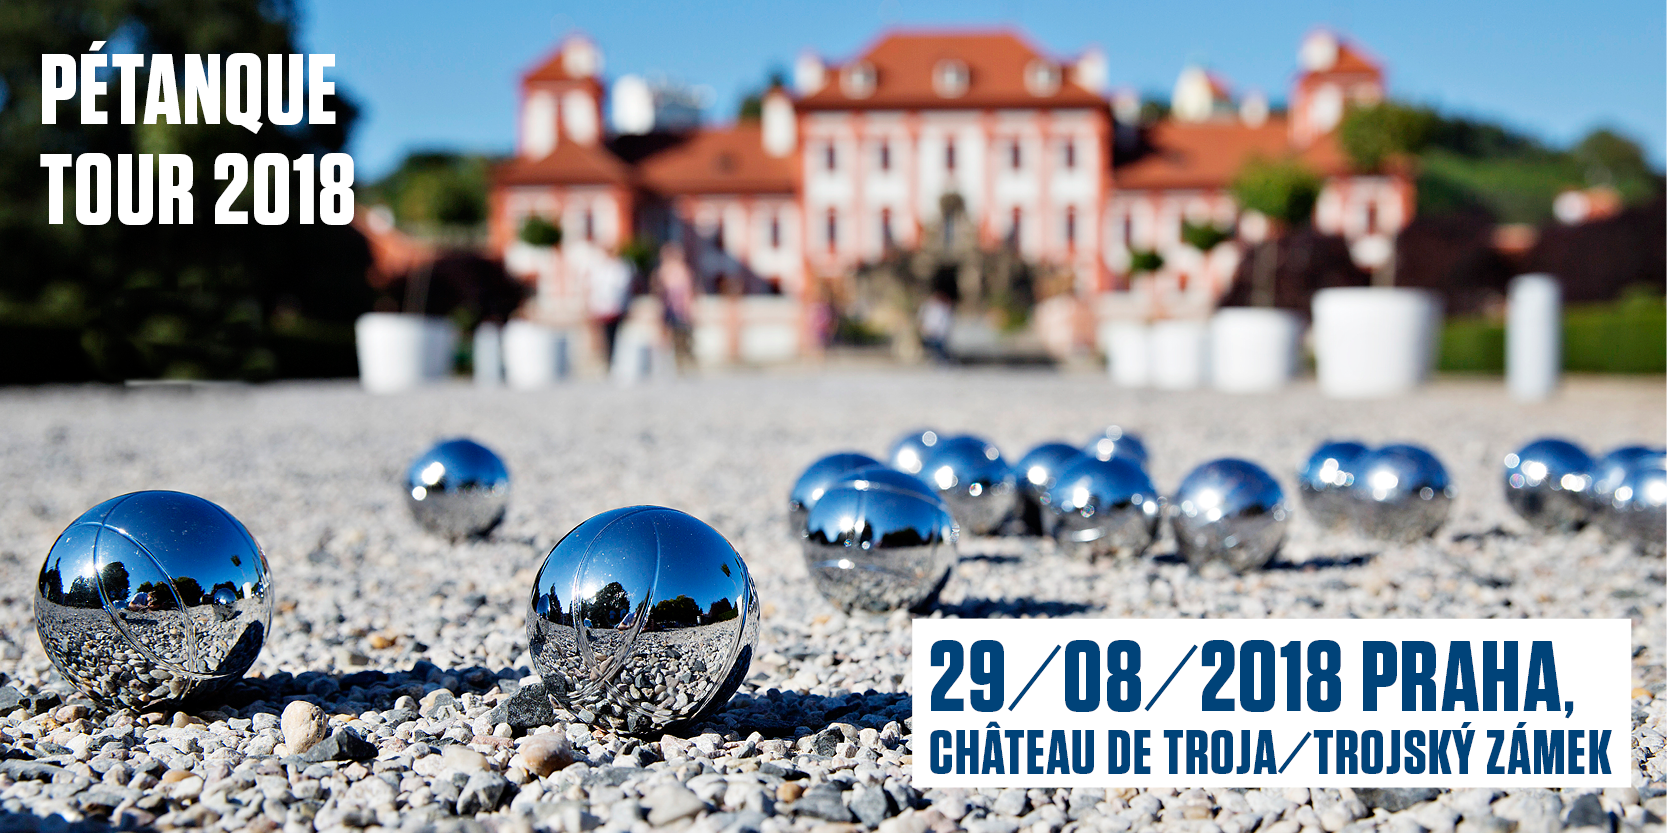 Tournoi de pétanque à Prague